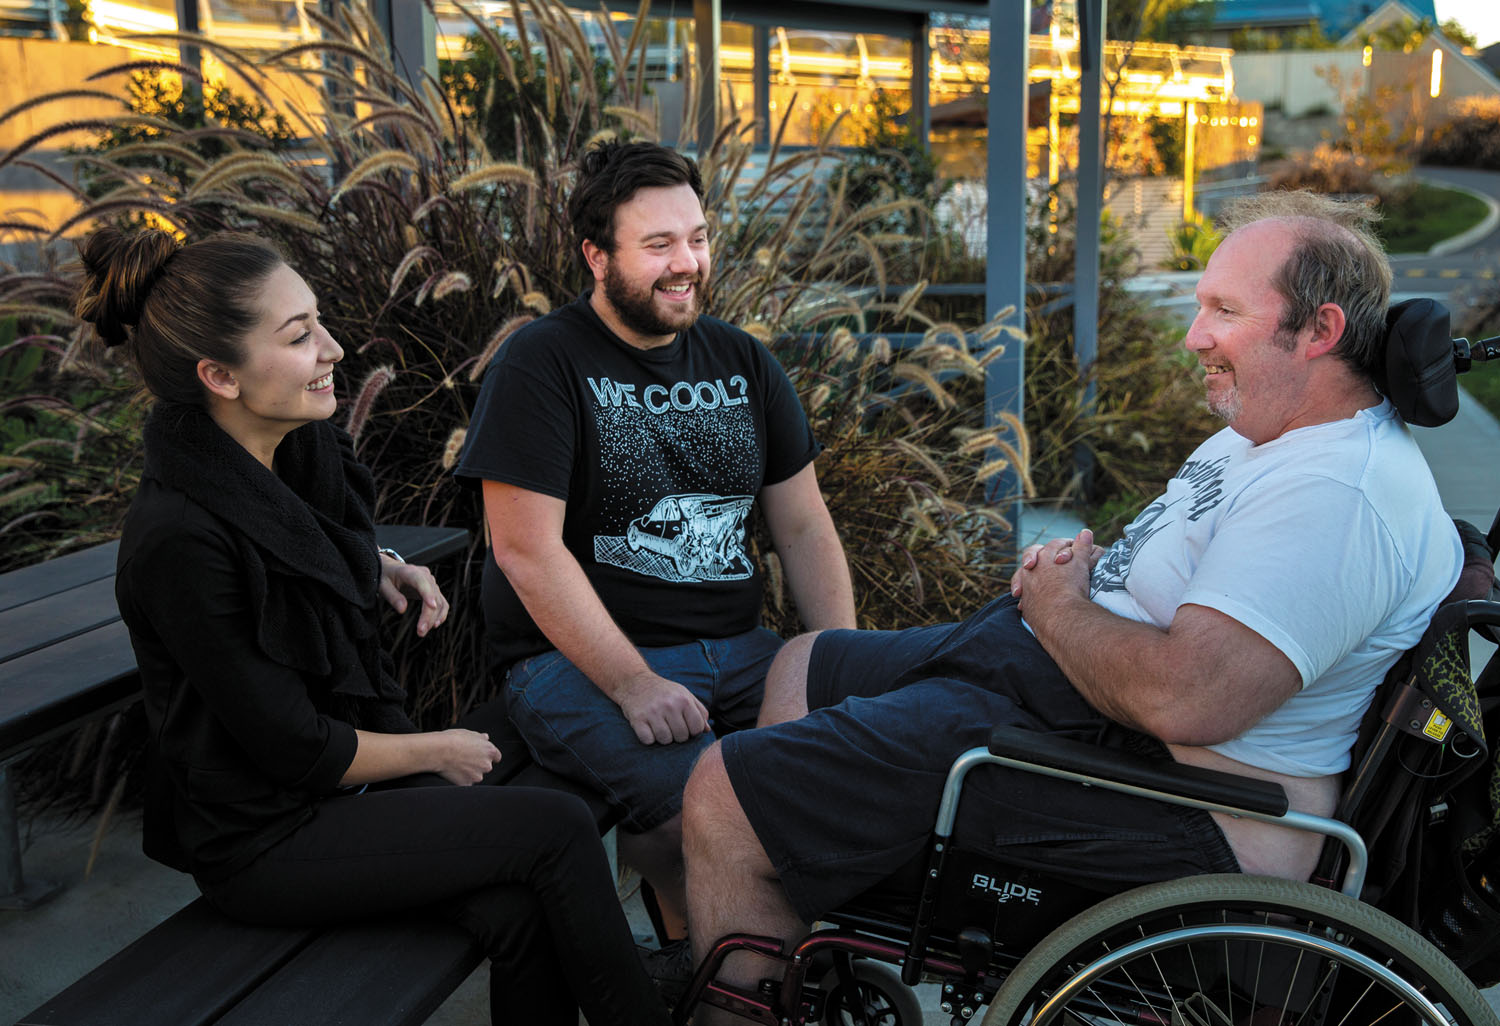 Opportunities for people with disabilities to reach personal goals